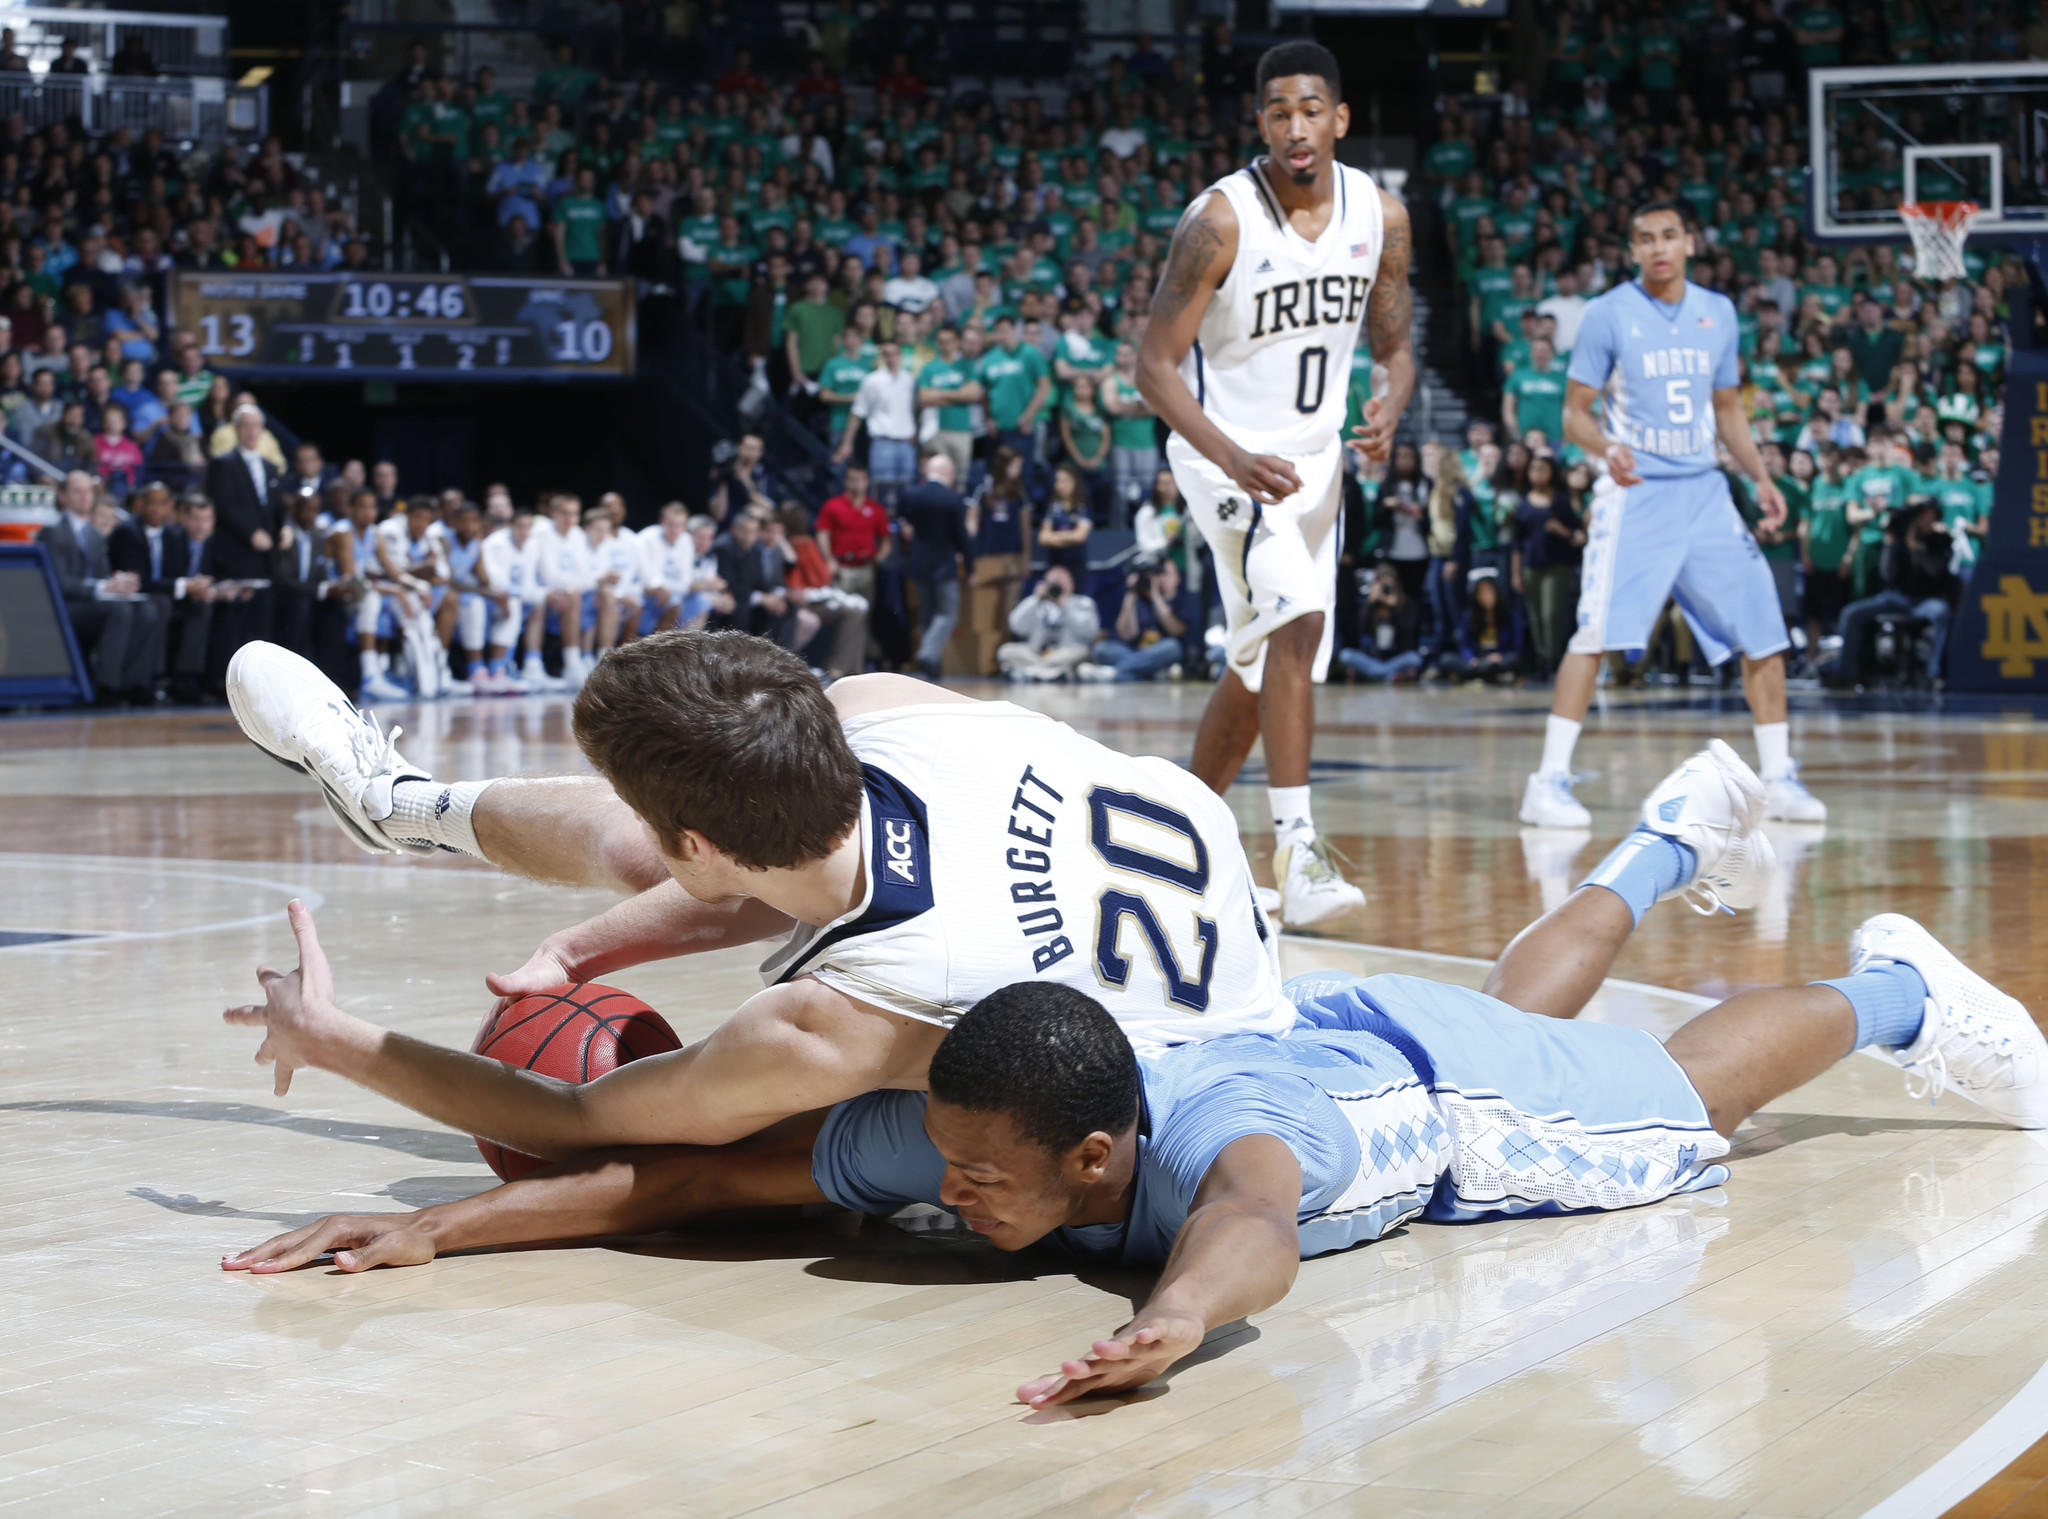 North Carolina guard Nate Britt scrambles for a loose ball against Notre Dame forward Austin Burgett.